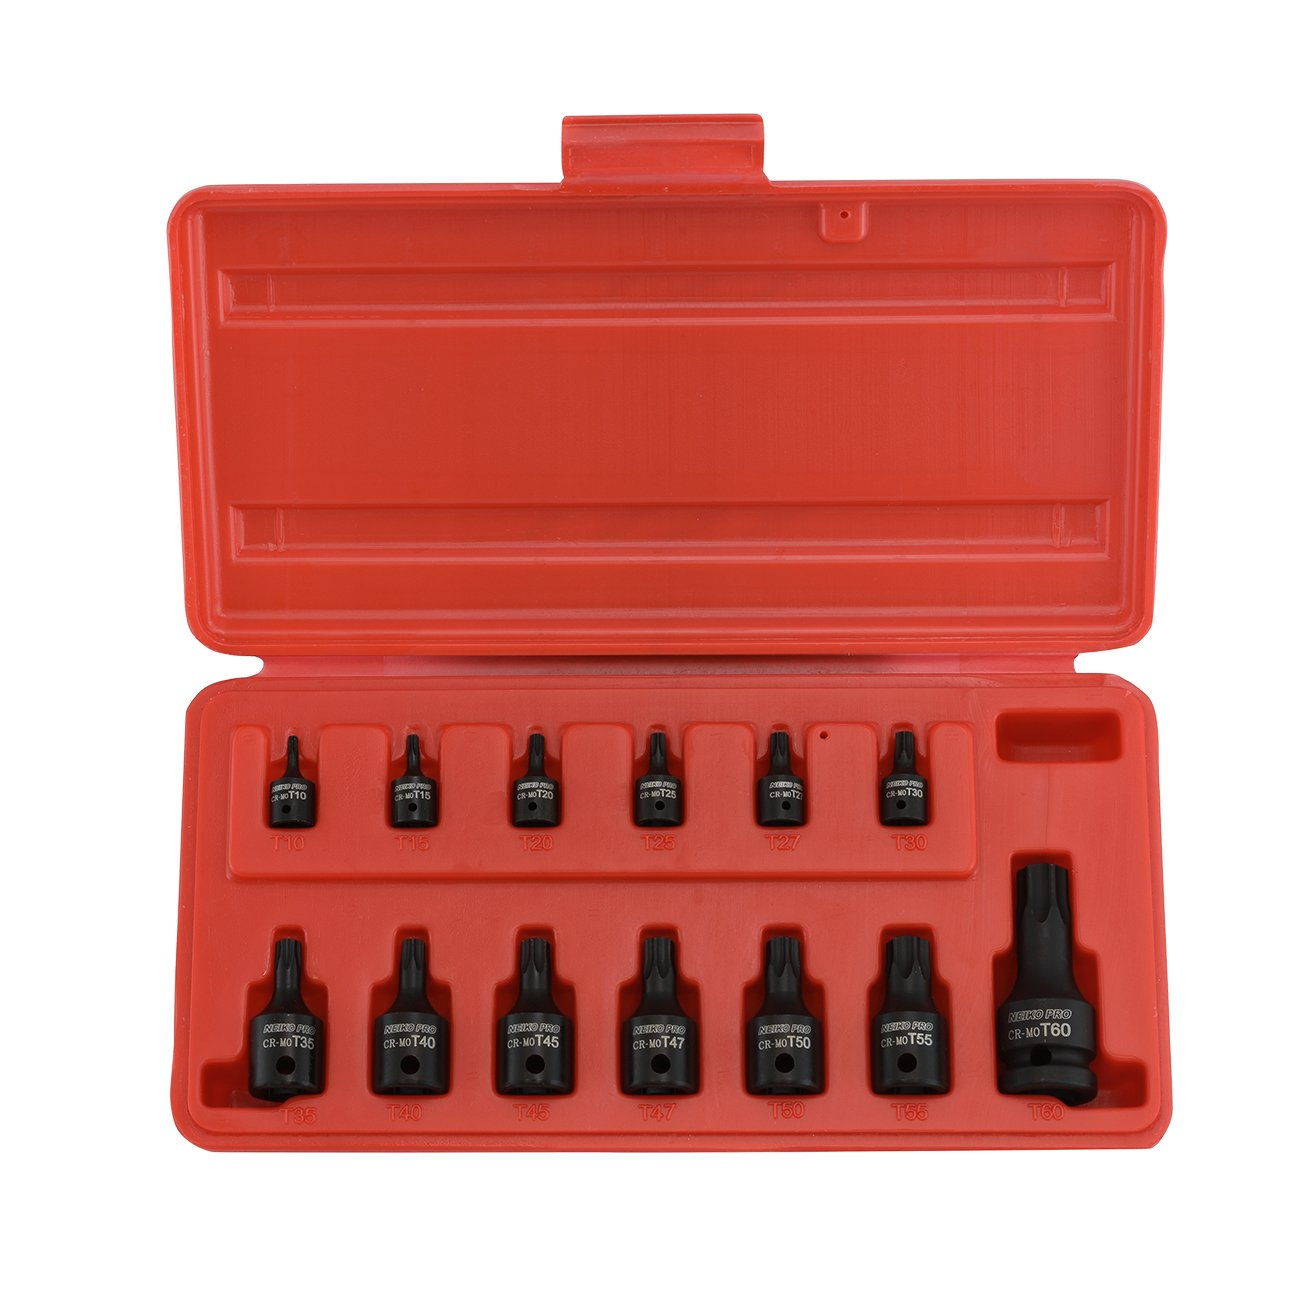 Neiko 10281B Impact Torx Socket Set (13 Piece) Ridgerock Tools Inc.